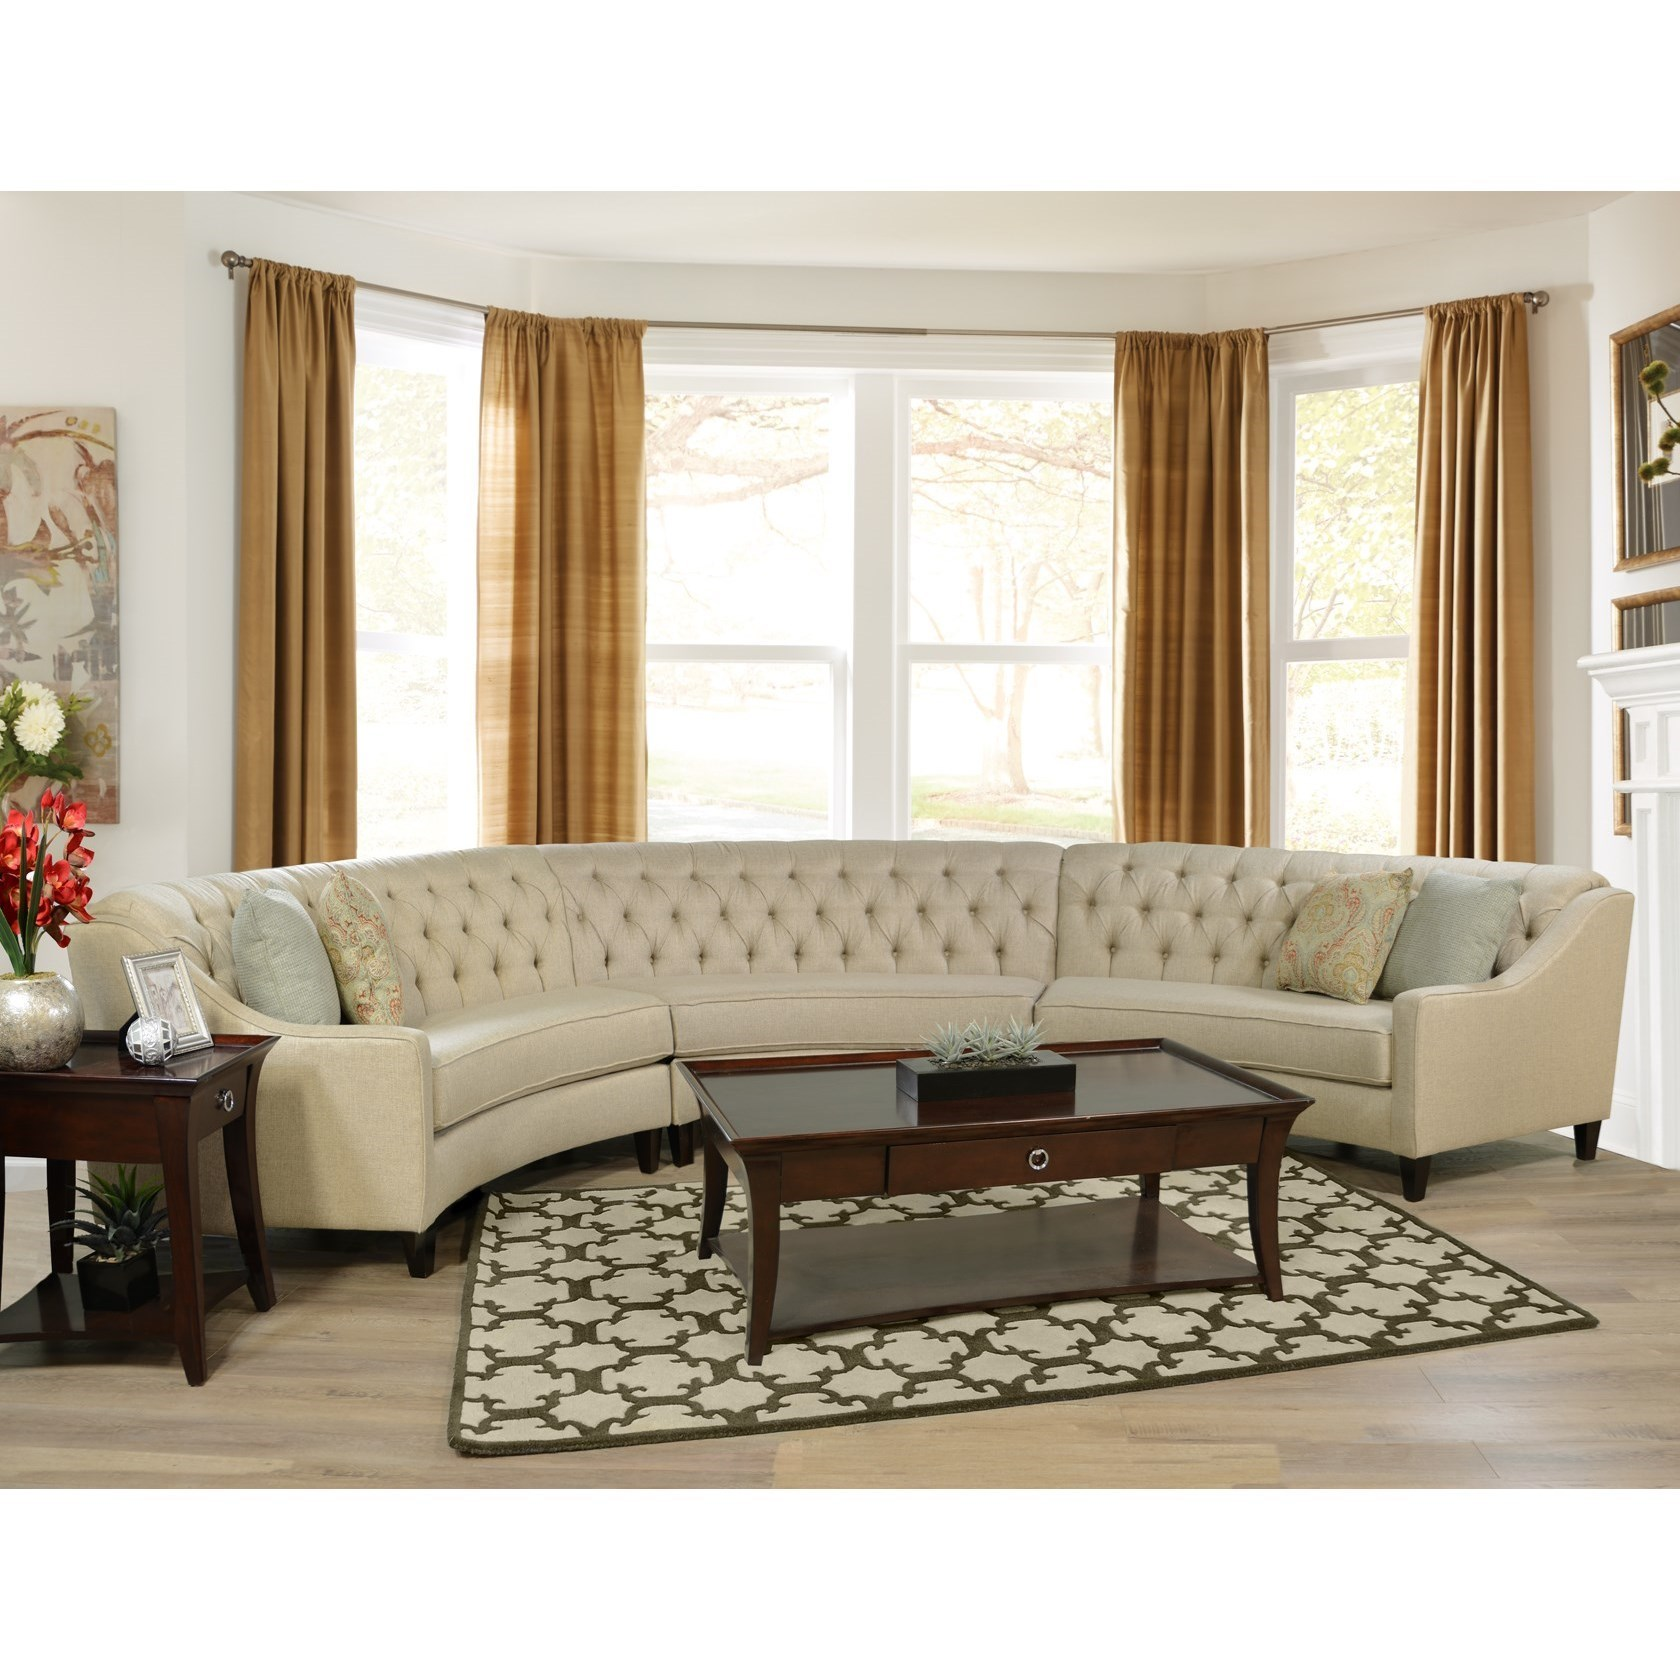 England Finneran 3 Piece Curved Sectional Sofa | Novello Home Furnishings | Sectional  Sofas